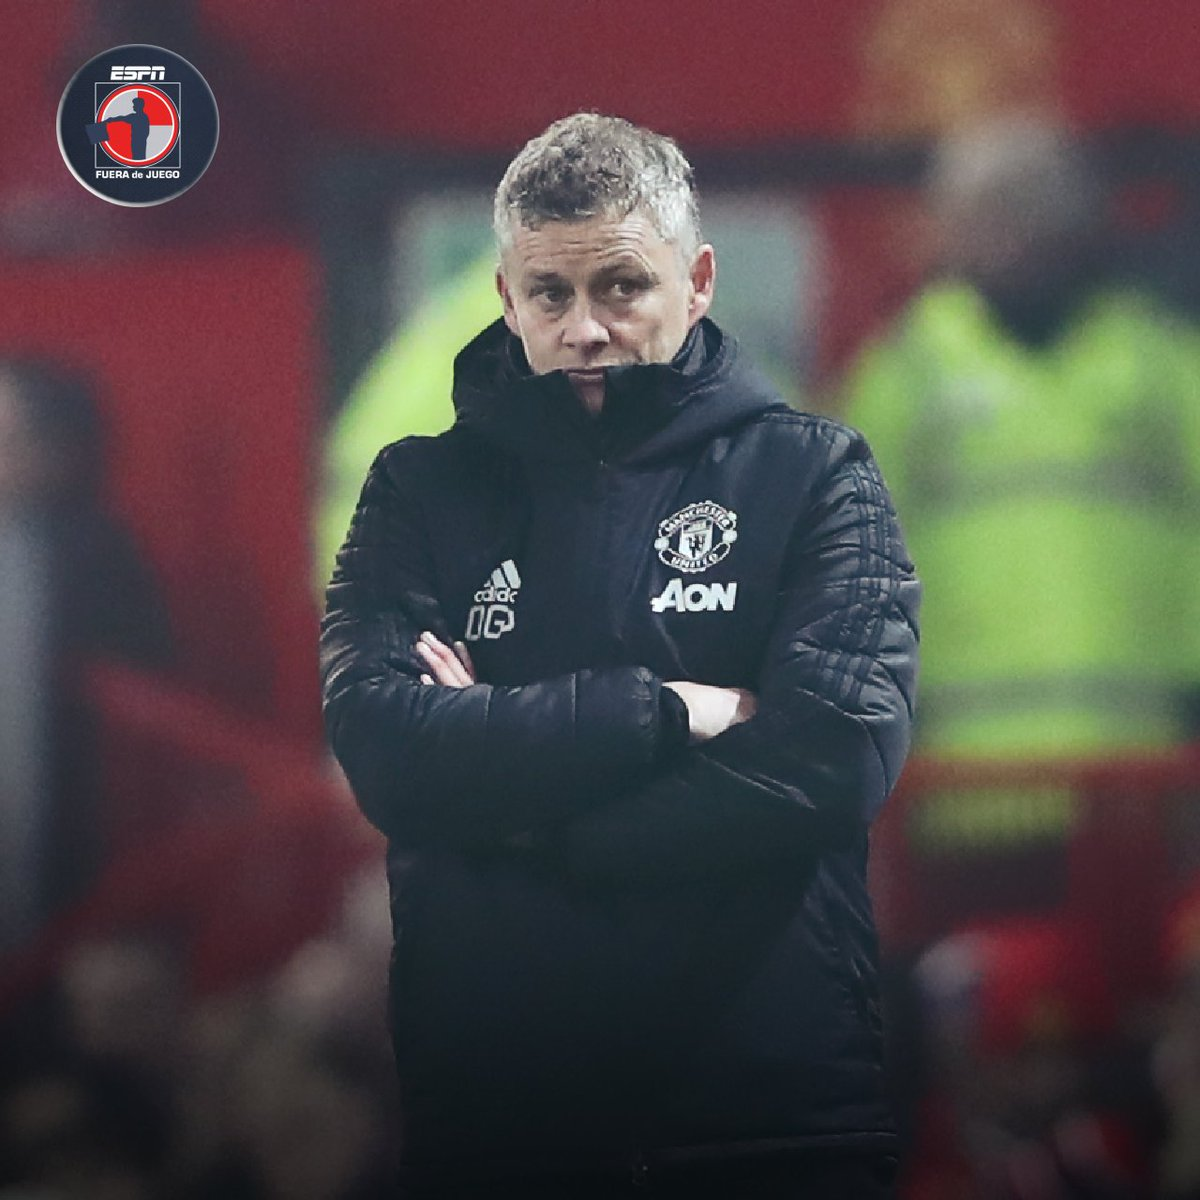 😣 El Manchester United cae 2-0 en Old Trafford con el Burnley Ha perdido contra.... ❌ Burnley ❌ Watford ❌ Bournemouth ❌ Newcastle ❌ West Ham ❌ Crystal Palace ¡TODOS LOS EQUIPOS ESTÁN DEBAJO DE LA MITAD DE LA TABLA! 😣